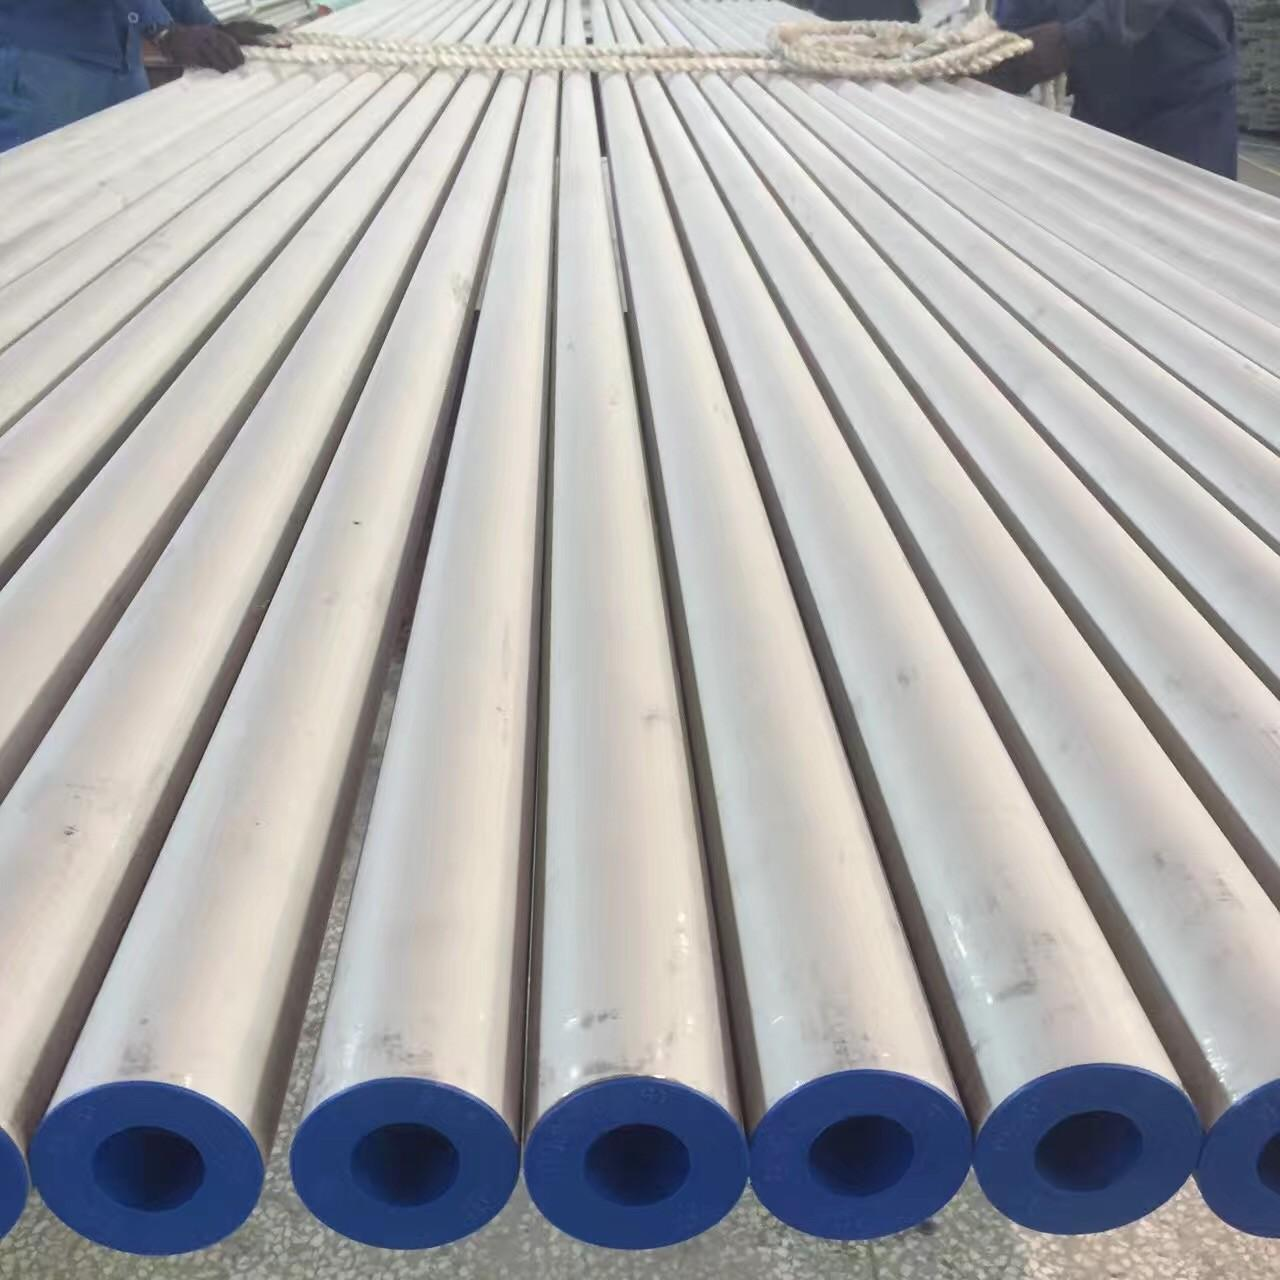 Stainless Steel Seamless Pipe, EN 10216-5 TC 1 D3/T3 1.4301 (TP304/304L), 1.4404, 1.4571 Manufactures